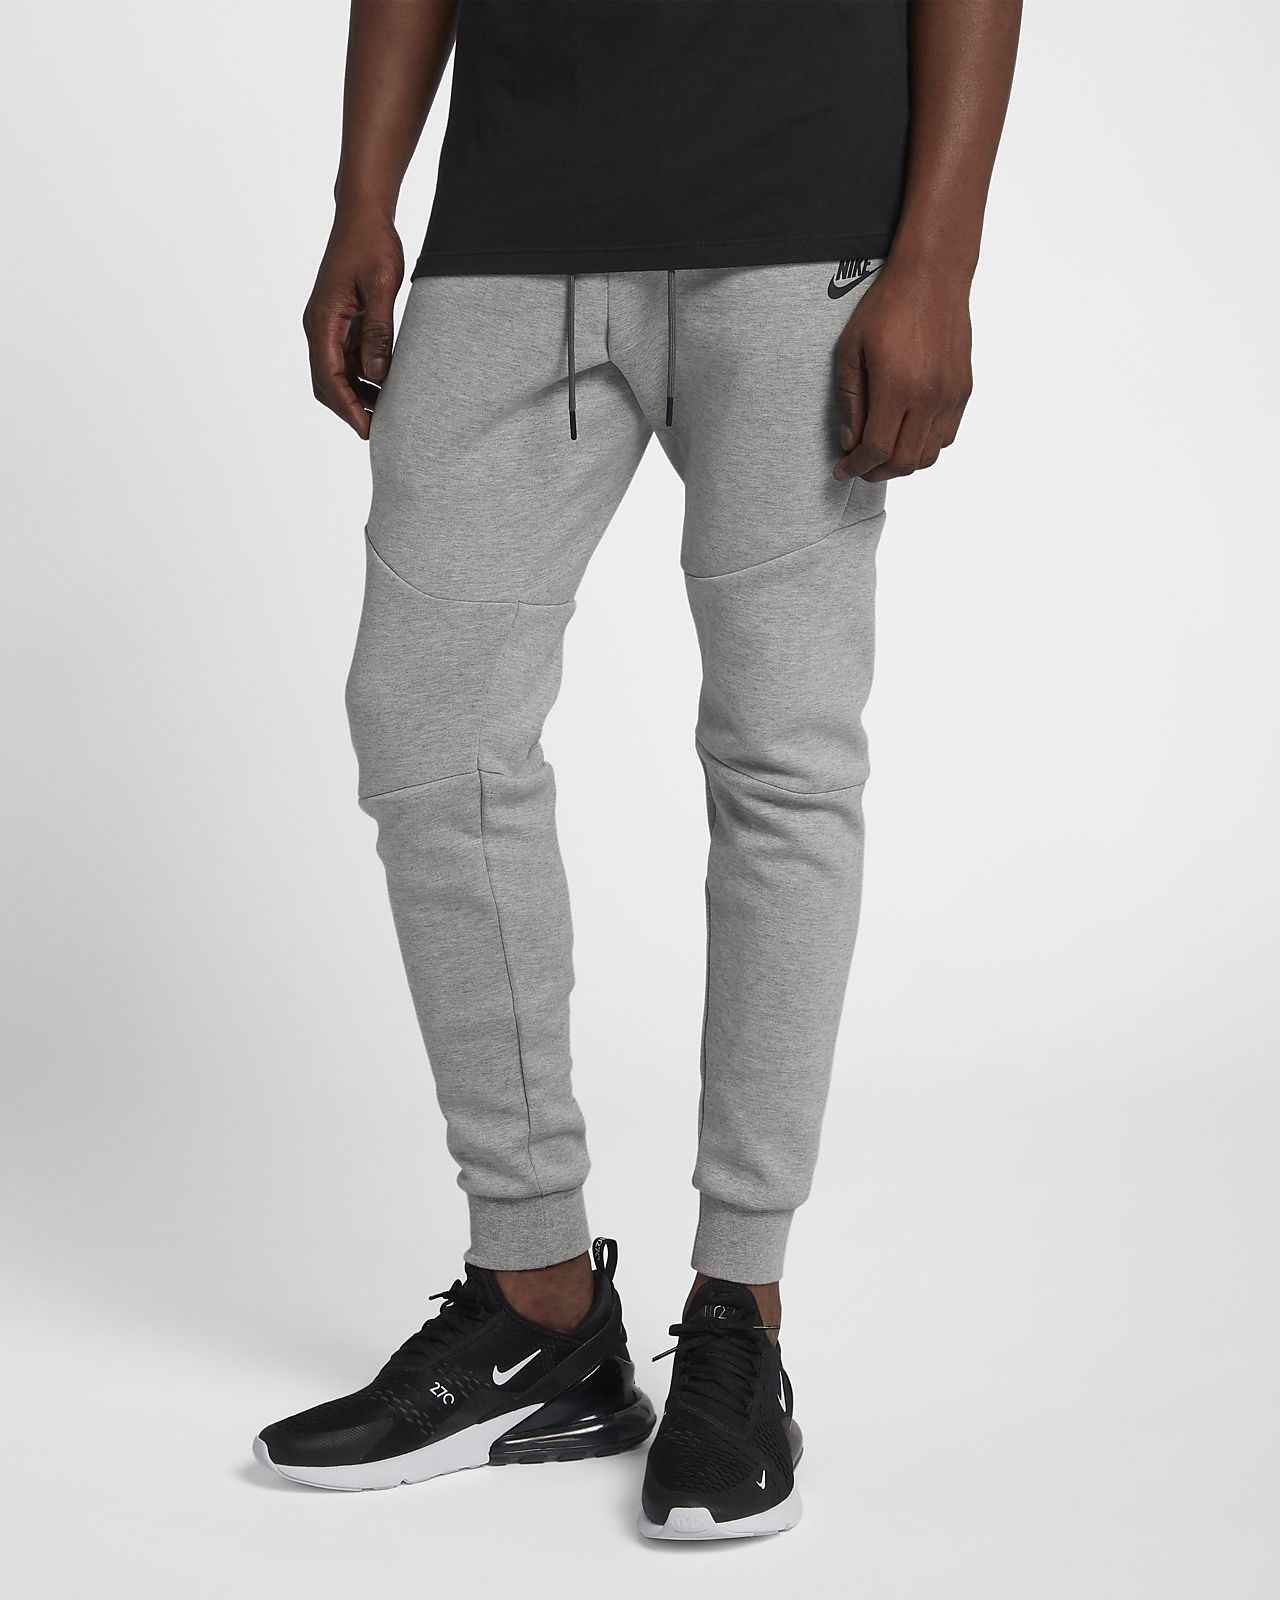 0eb2a3fe2950 Nike Sportswear Tech Fleece Men s Joggers. Nike.com